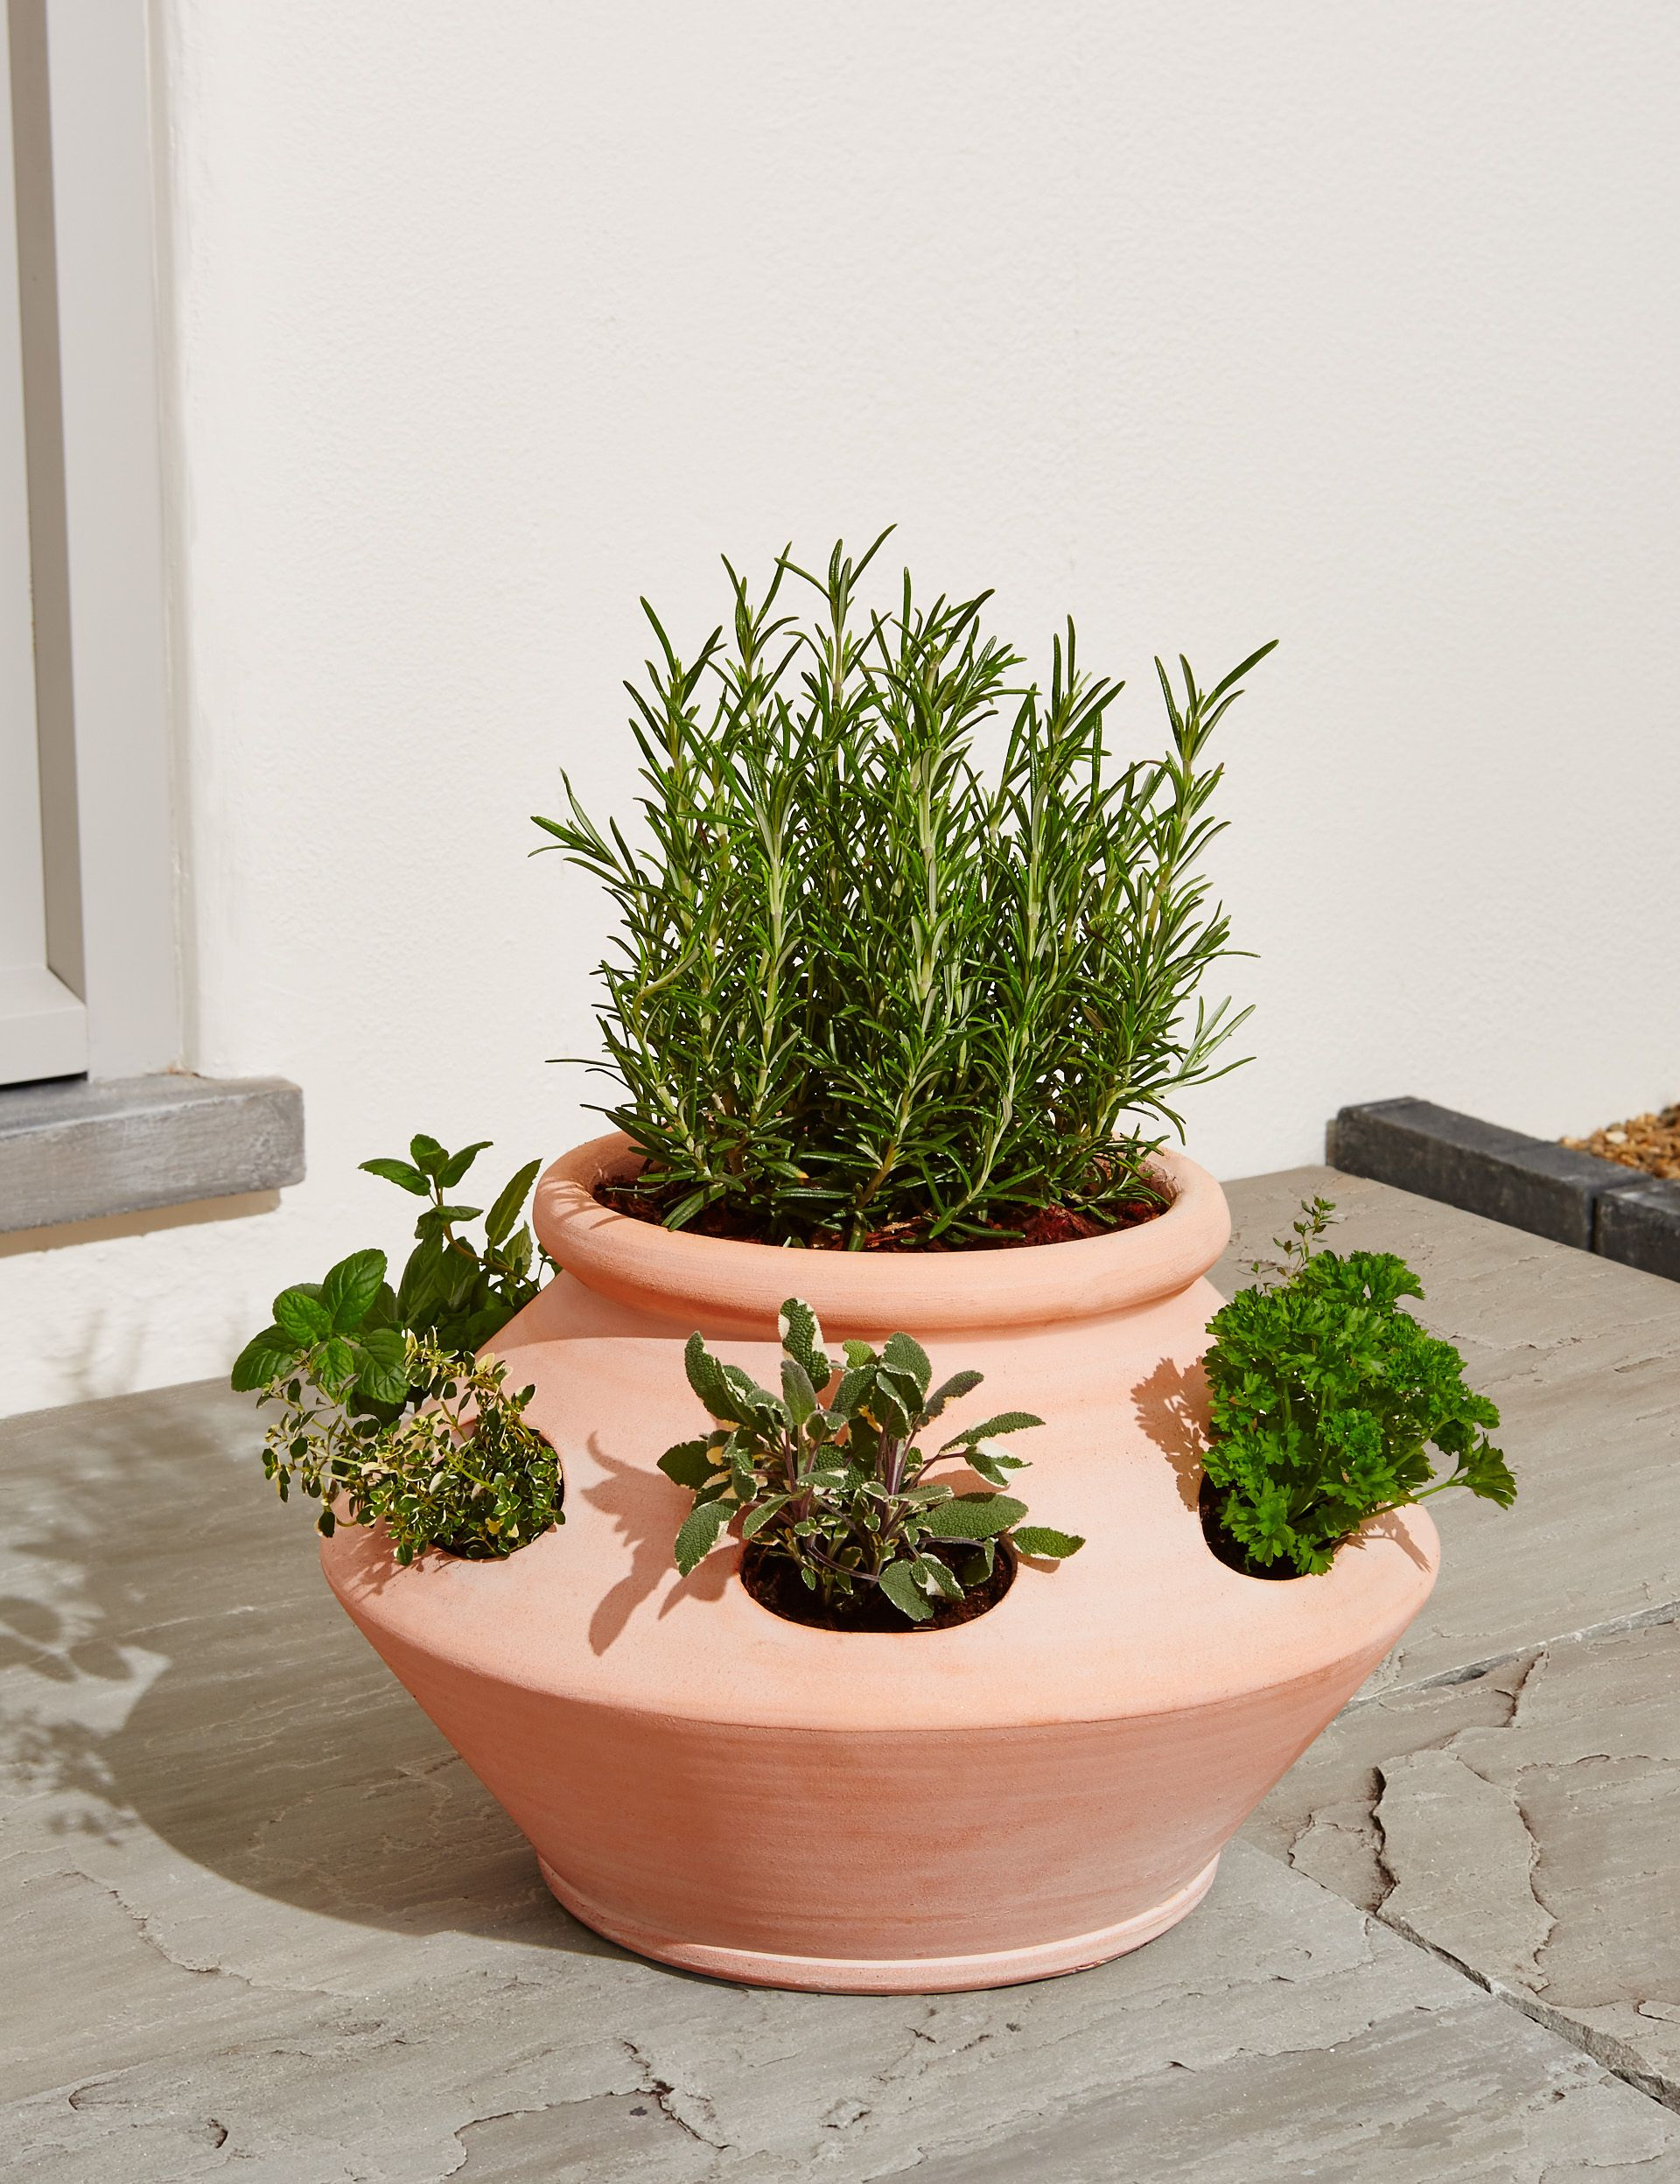 Planter For Herbs Marks Spencer S Terracotta Herb Planter Is A Garden Must Have